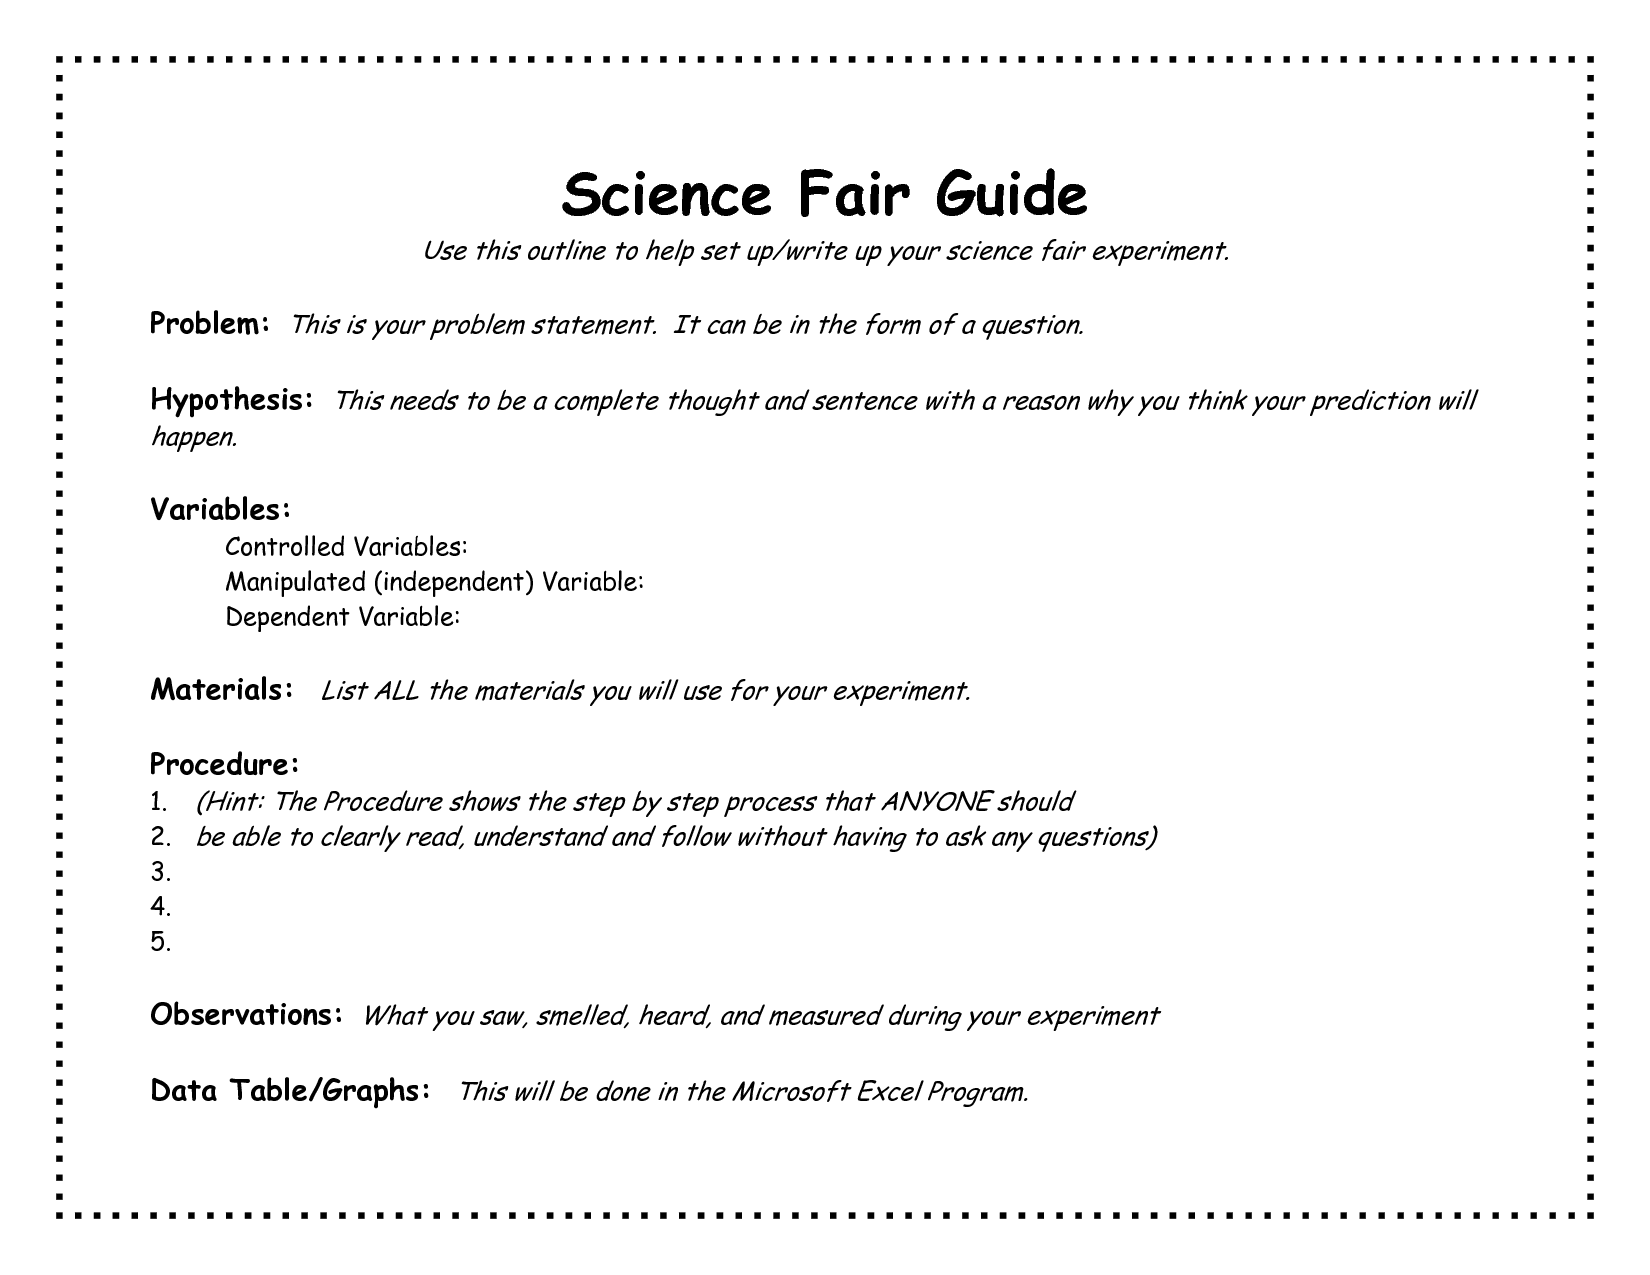 004 Example Of Science Fair Research Paper Outline Amazing A Full